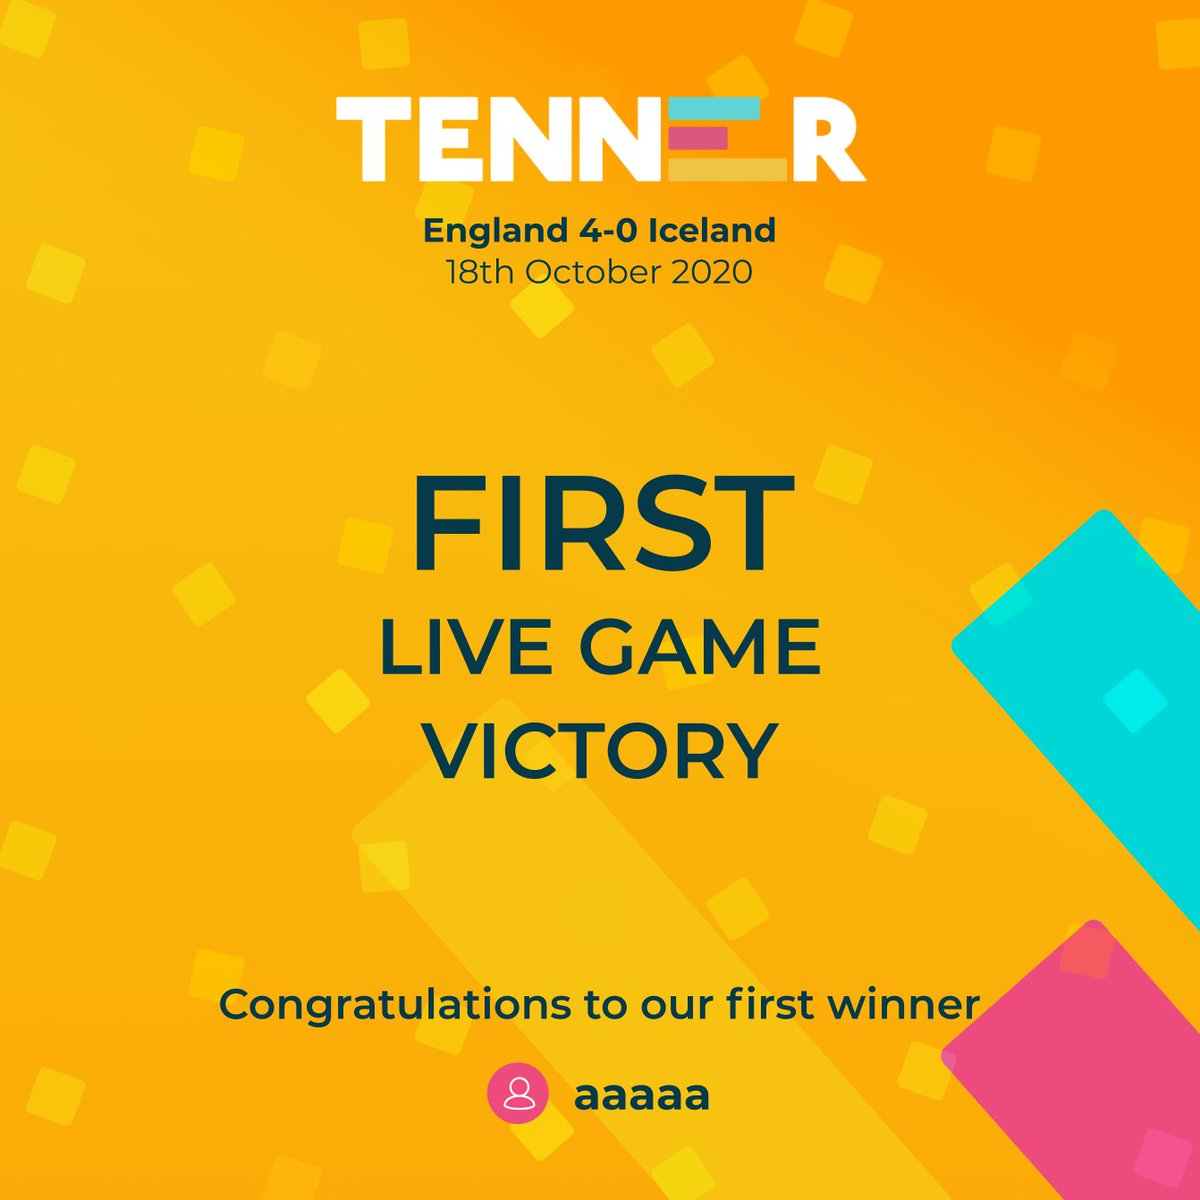 Last night on the England vs Iceland match we had our first live game victory! 🎉 💰  Be sure to check the Tenner app to see when the next live game will be up!  Download Tenner today to start playing today! https://t.co/1UH1xvTXci https://t.co/UwXkHY8dvW